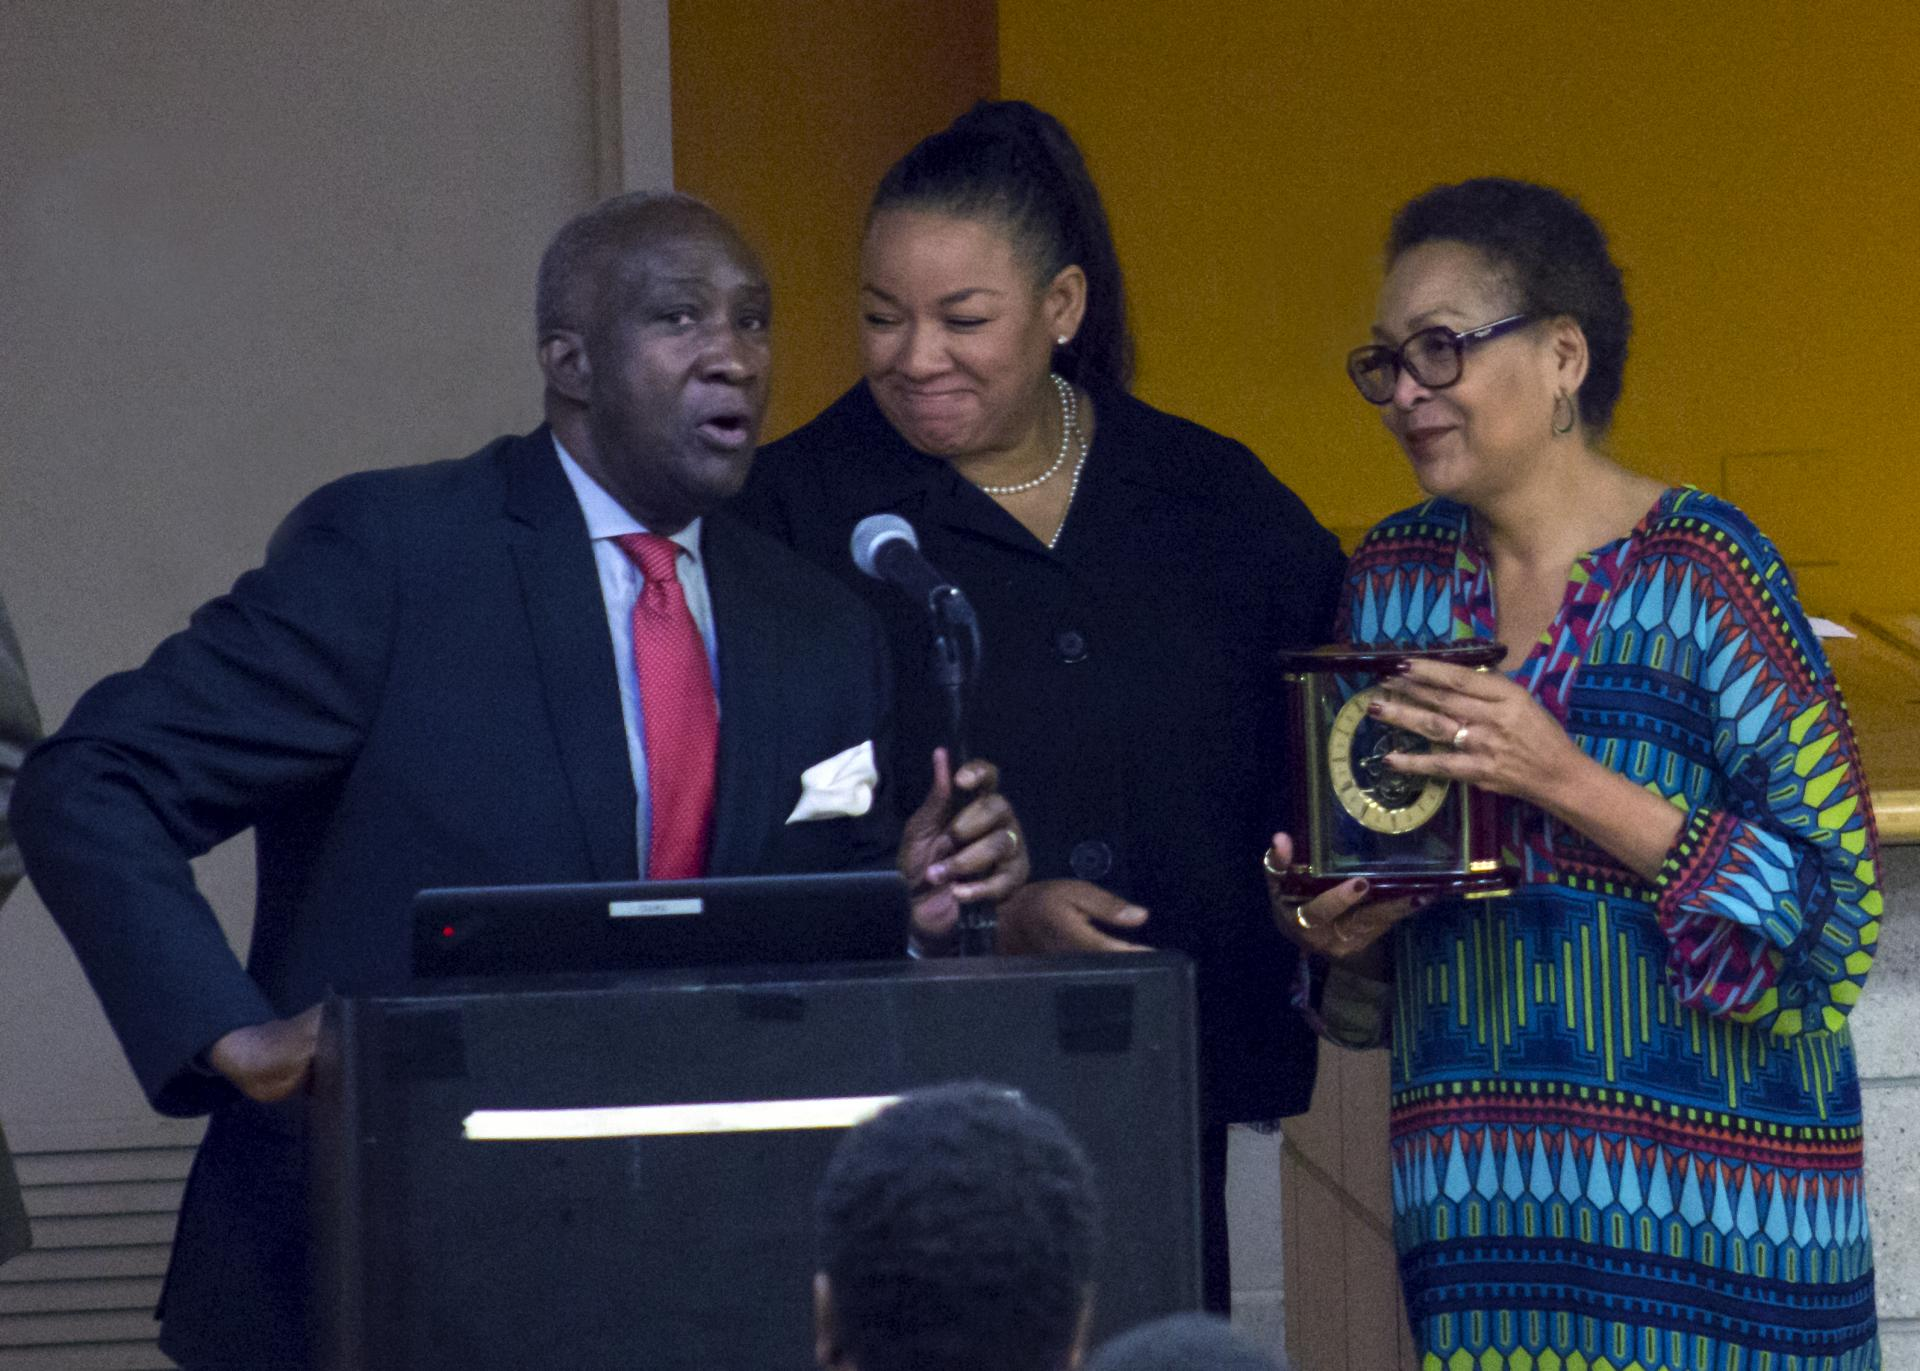 Lloyd Williams, president and CEO of the Greater Harlem Chamber of Commerce, presenting the Outstanding Professional Achievement Award to La-Verna Fountain (right)